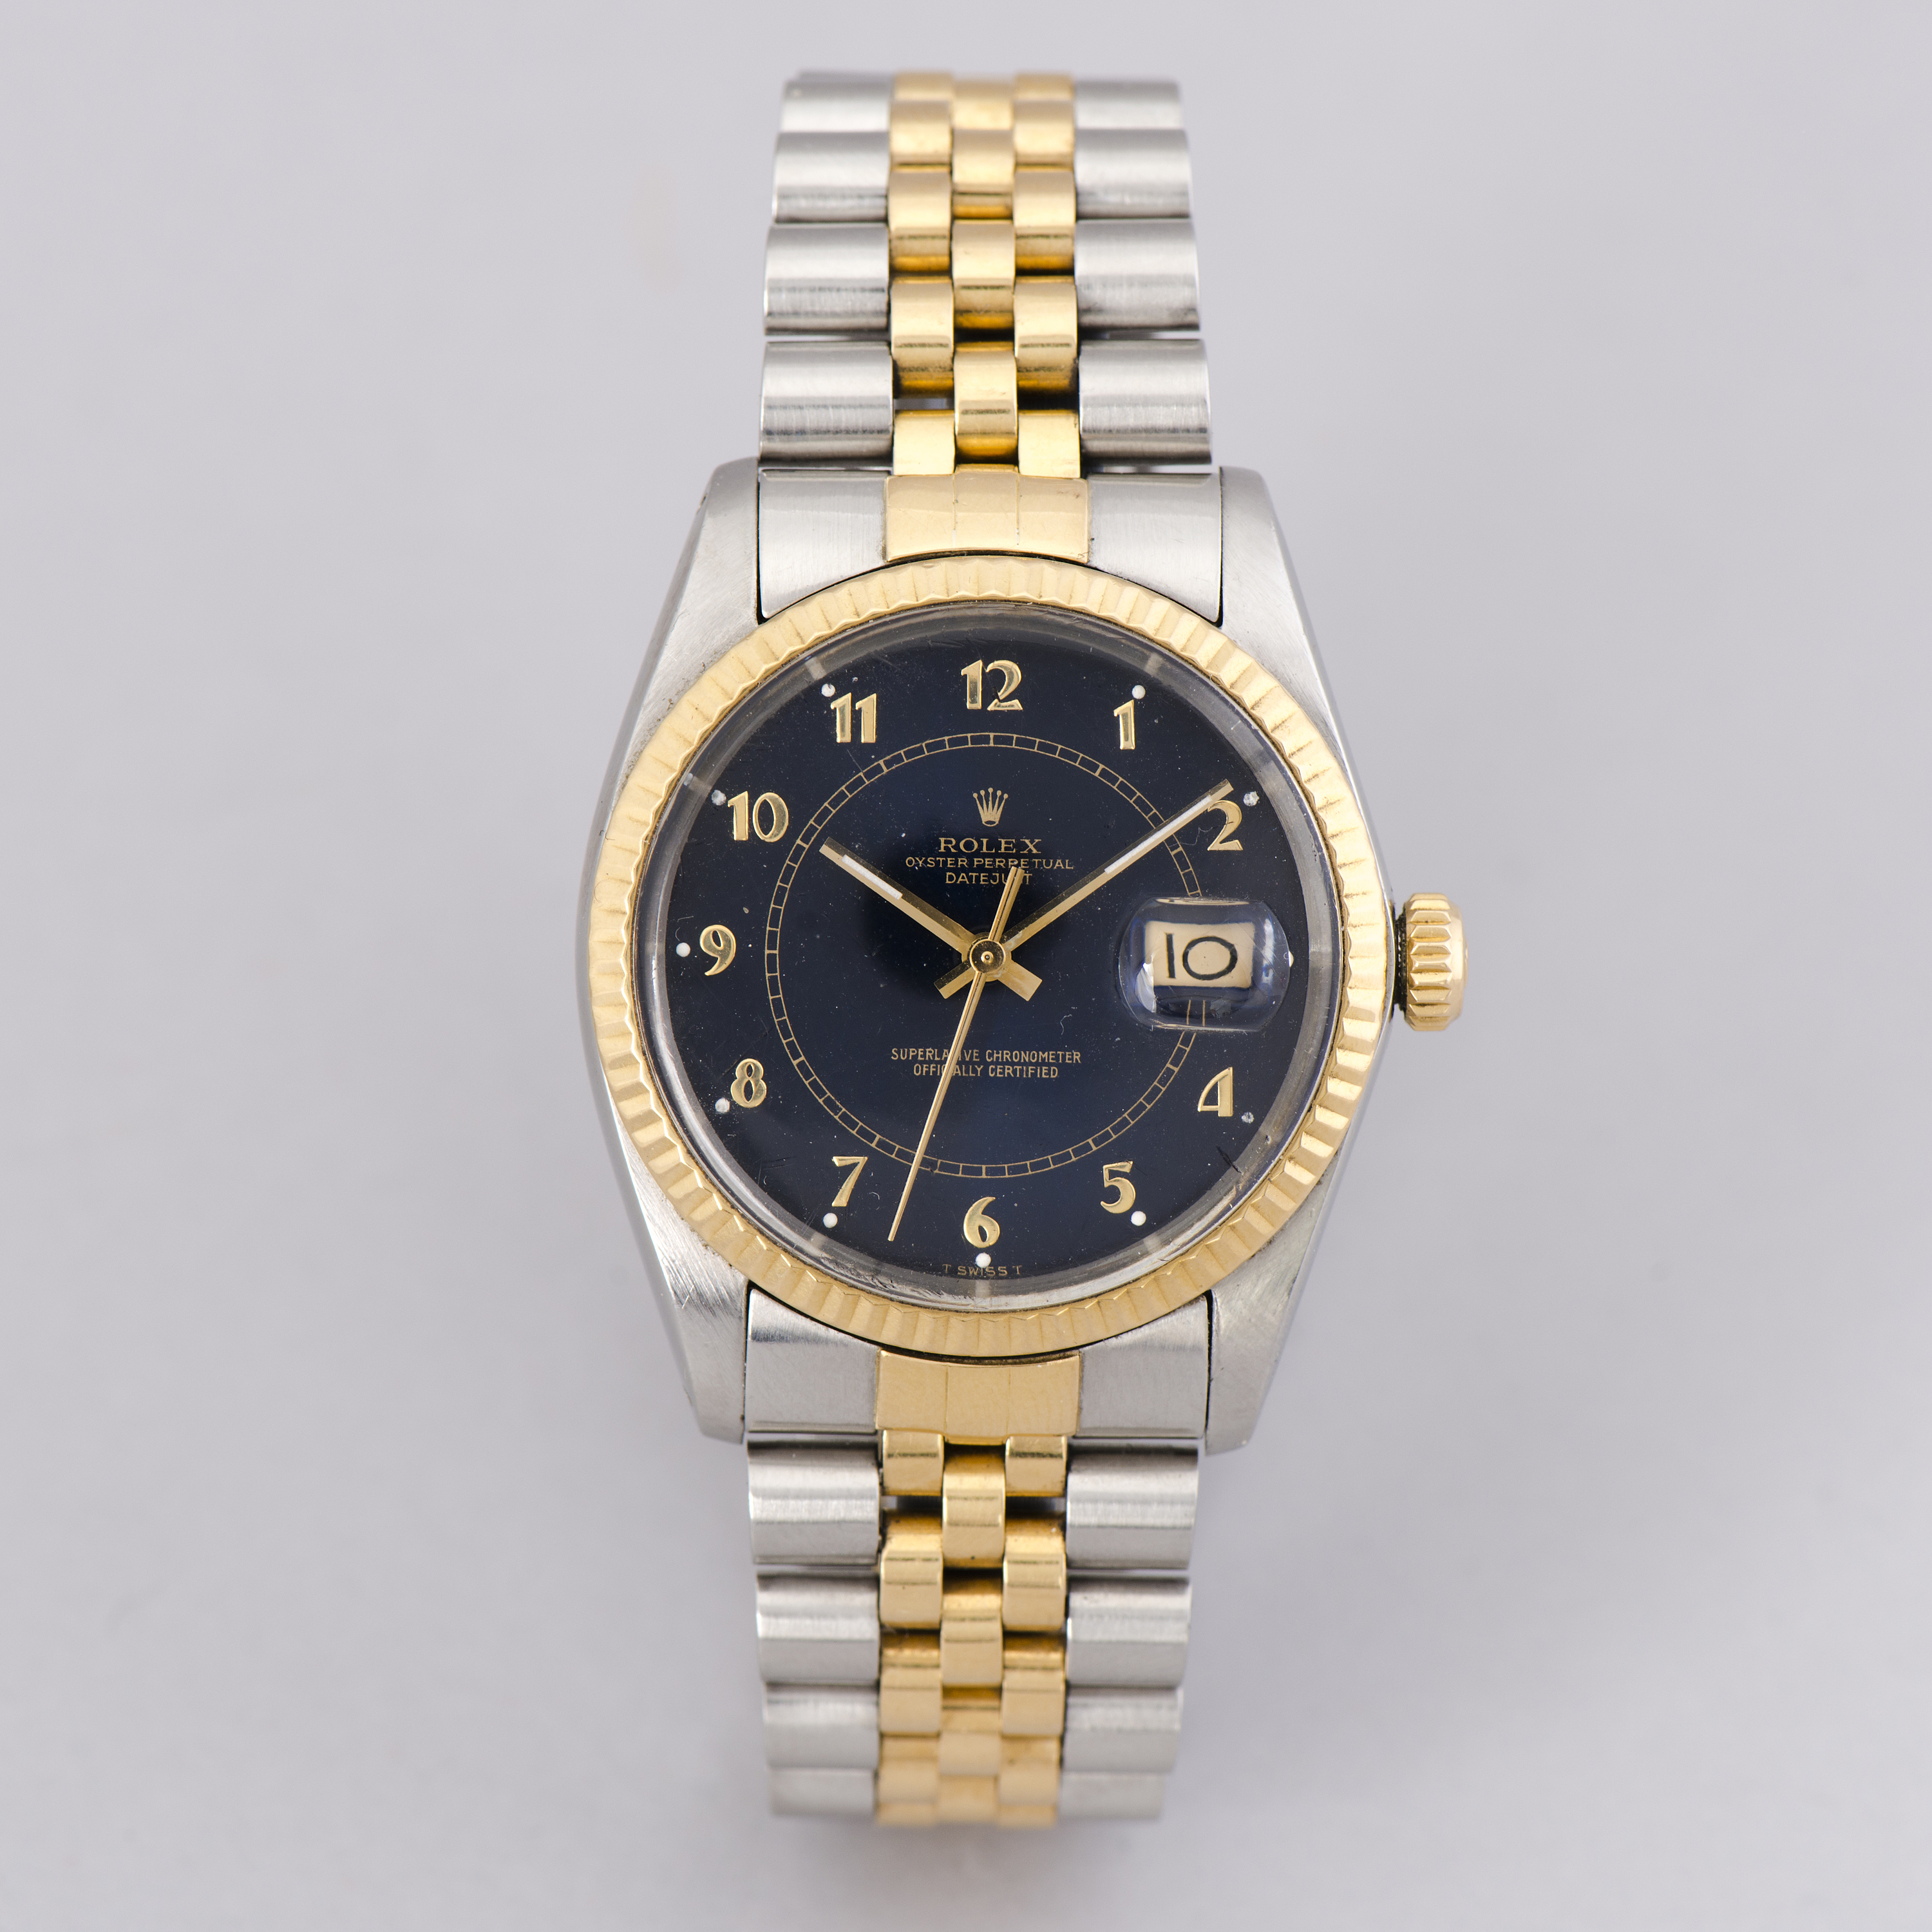 rolex oyster perpetual datejust serial number 62523h.18